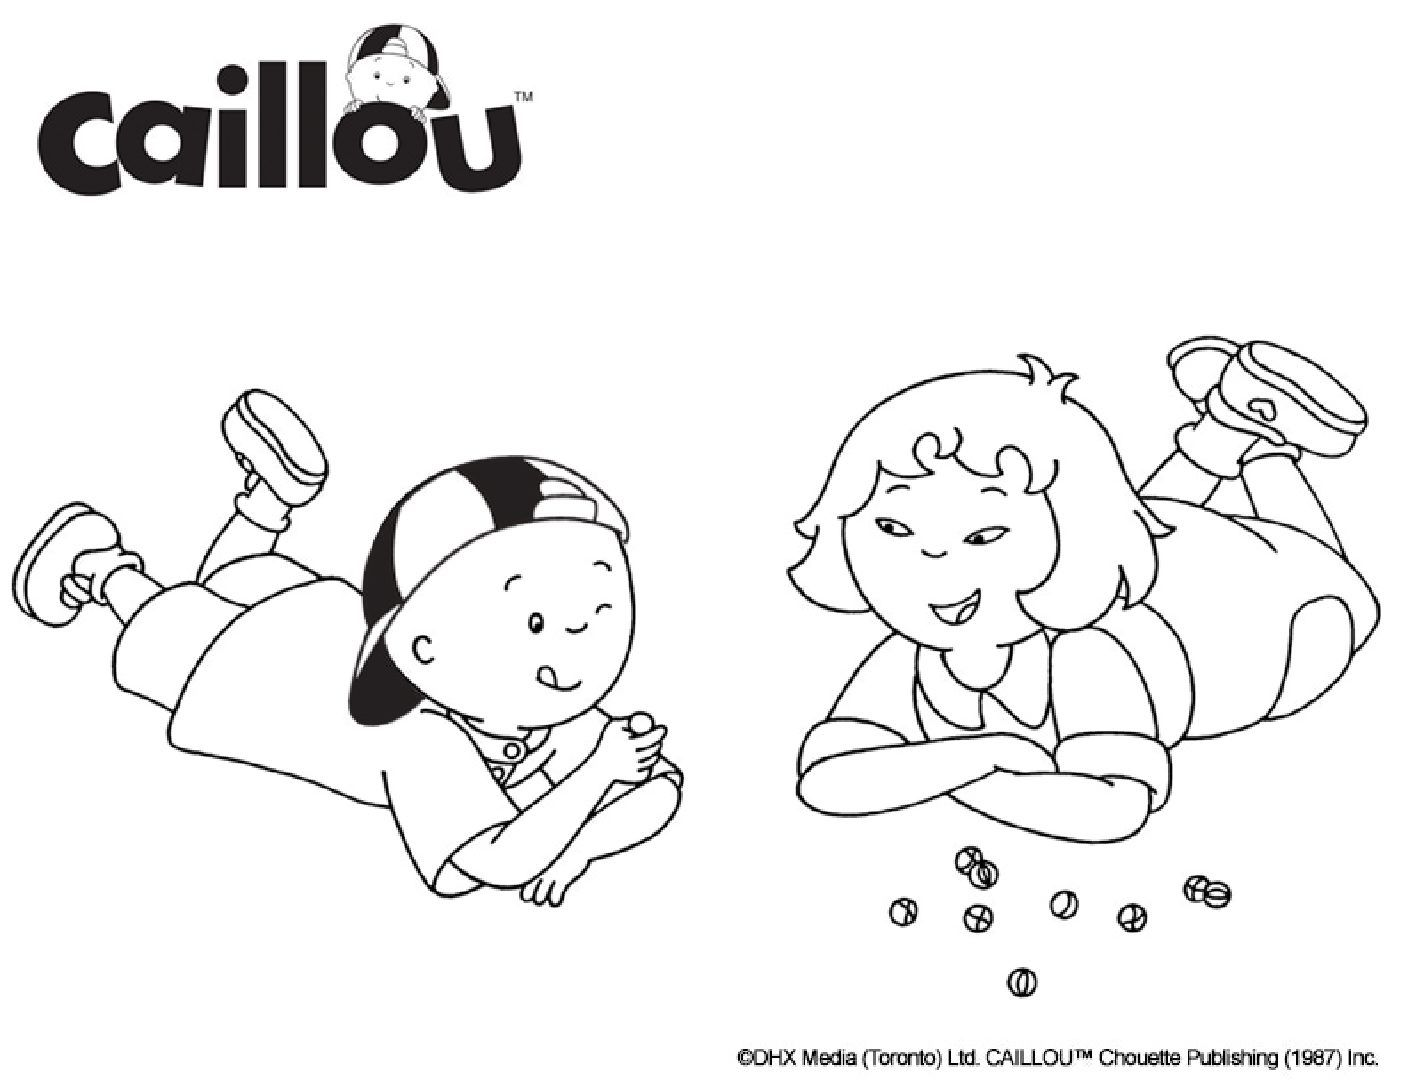 Caillou Coloring Sheet Fun Games Caillou Coloring Pictures Coloring Books